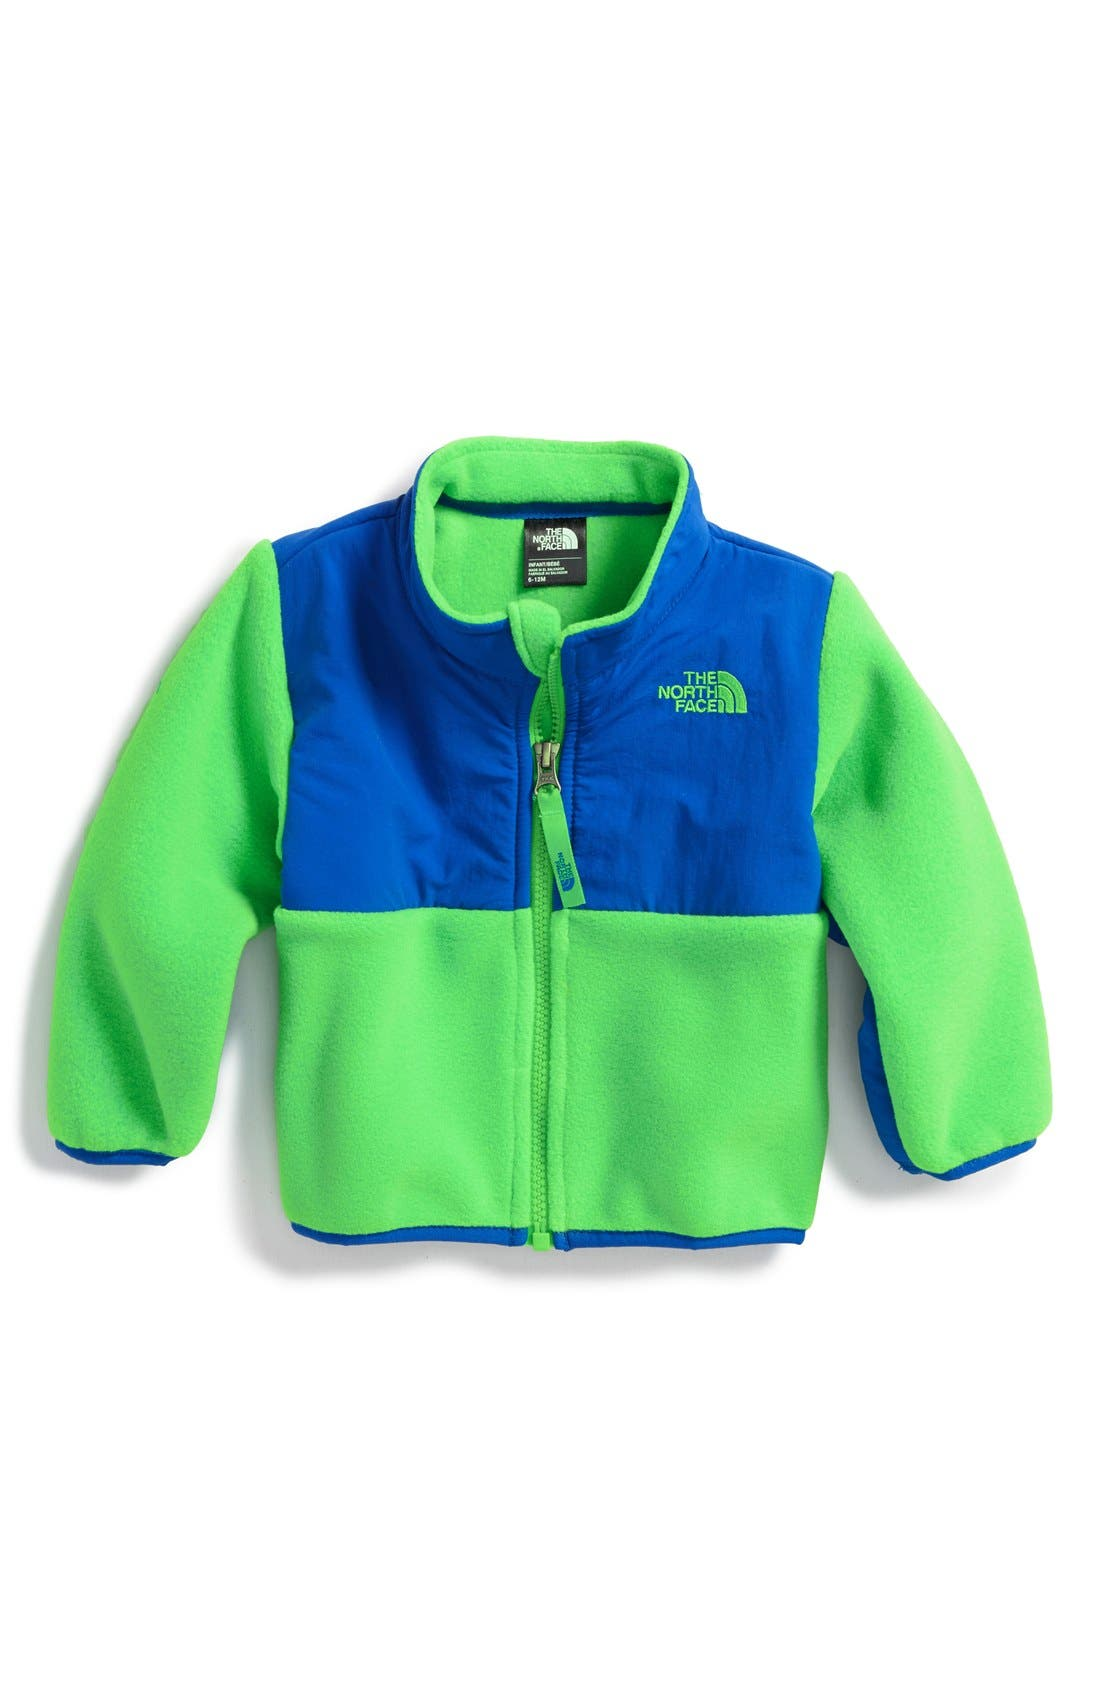 Alternate Image 1 Selected - The North Face 'Denali' Recycled Fleece Jacket (Baby Boys)